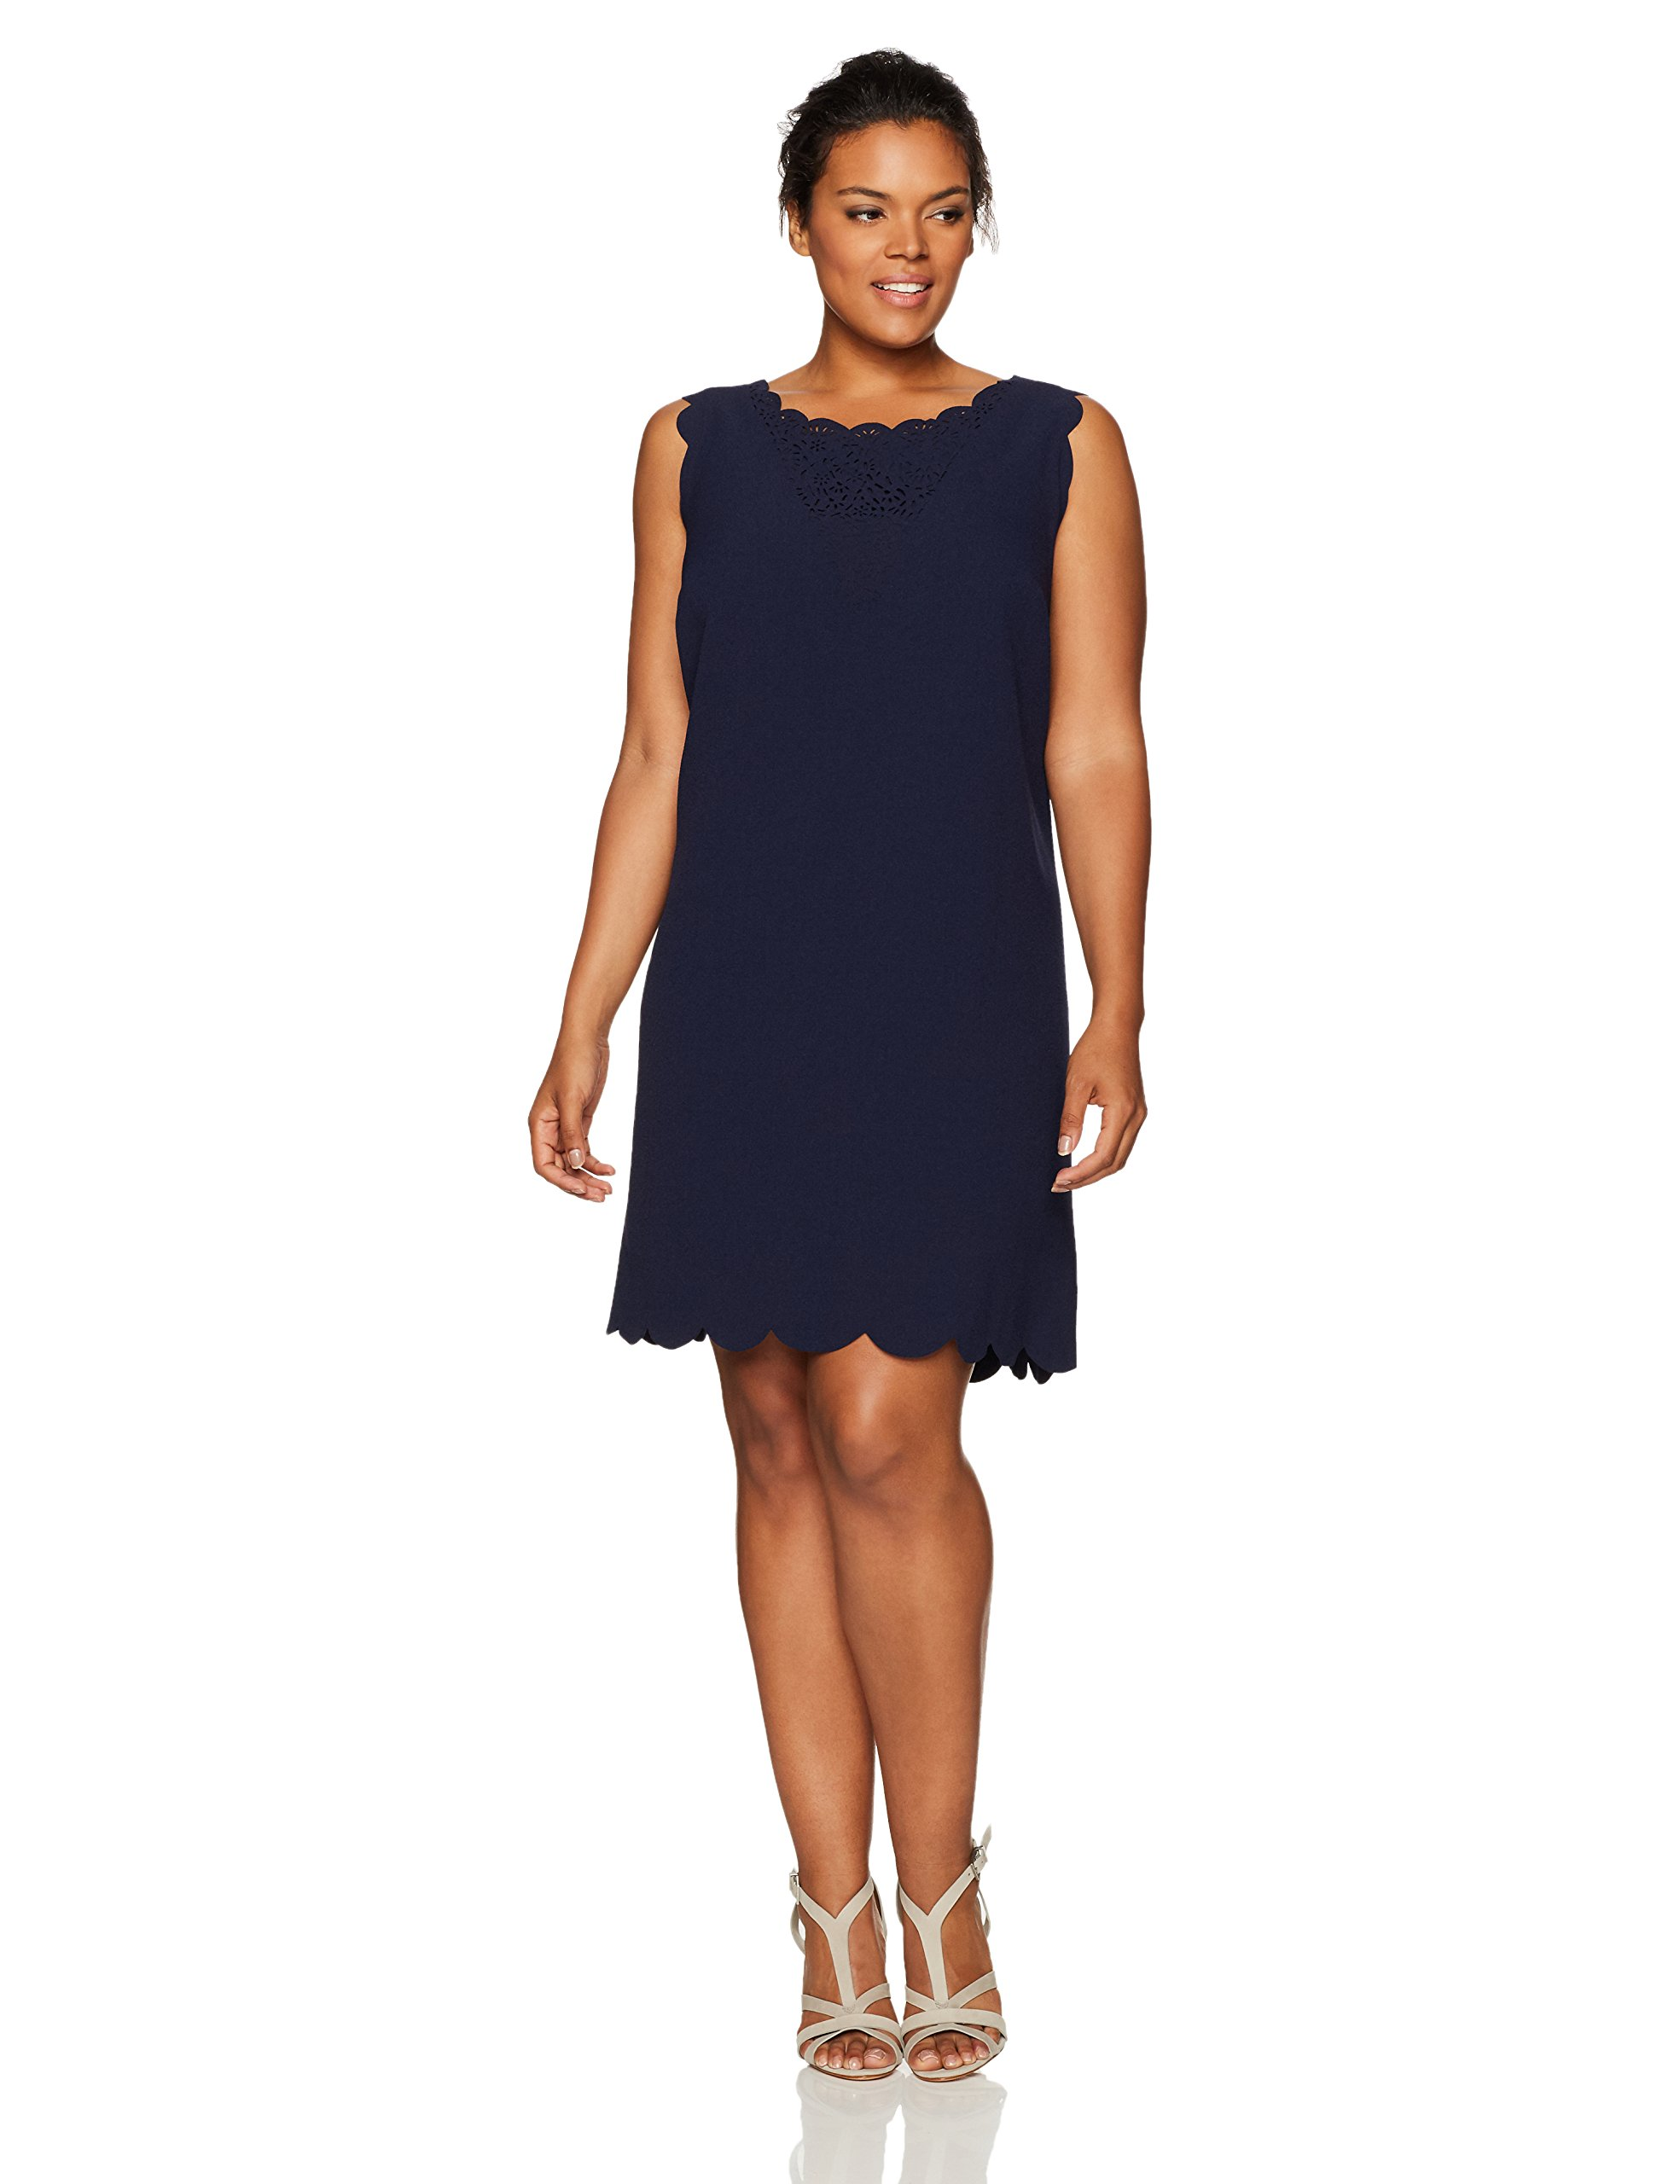 Julia Jordan Women's Plus Size One Piece Cut Out Neck Sleeveless Sheath, Navy, 16W by Julia Jordan